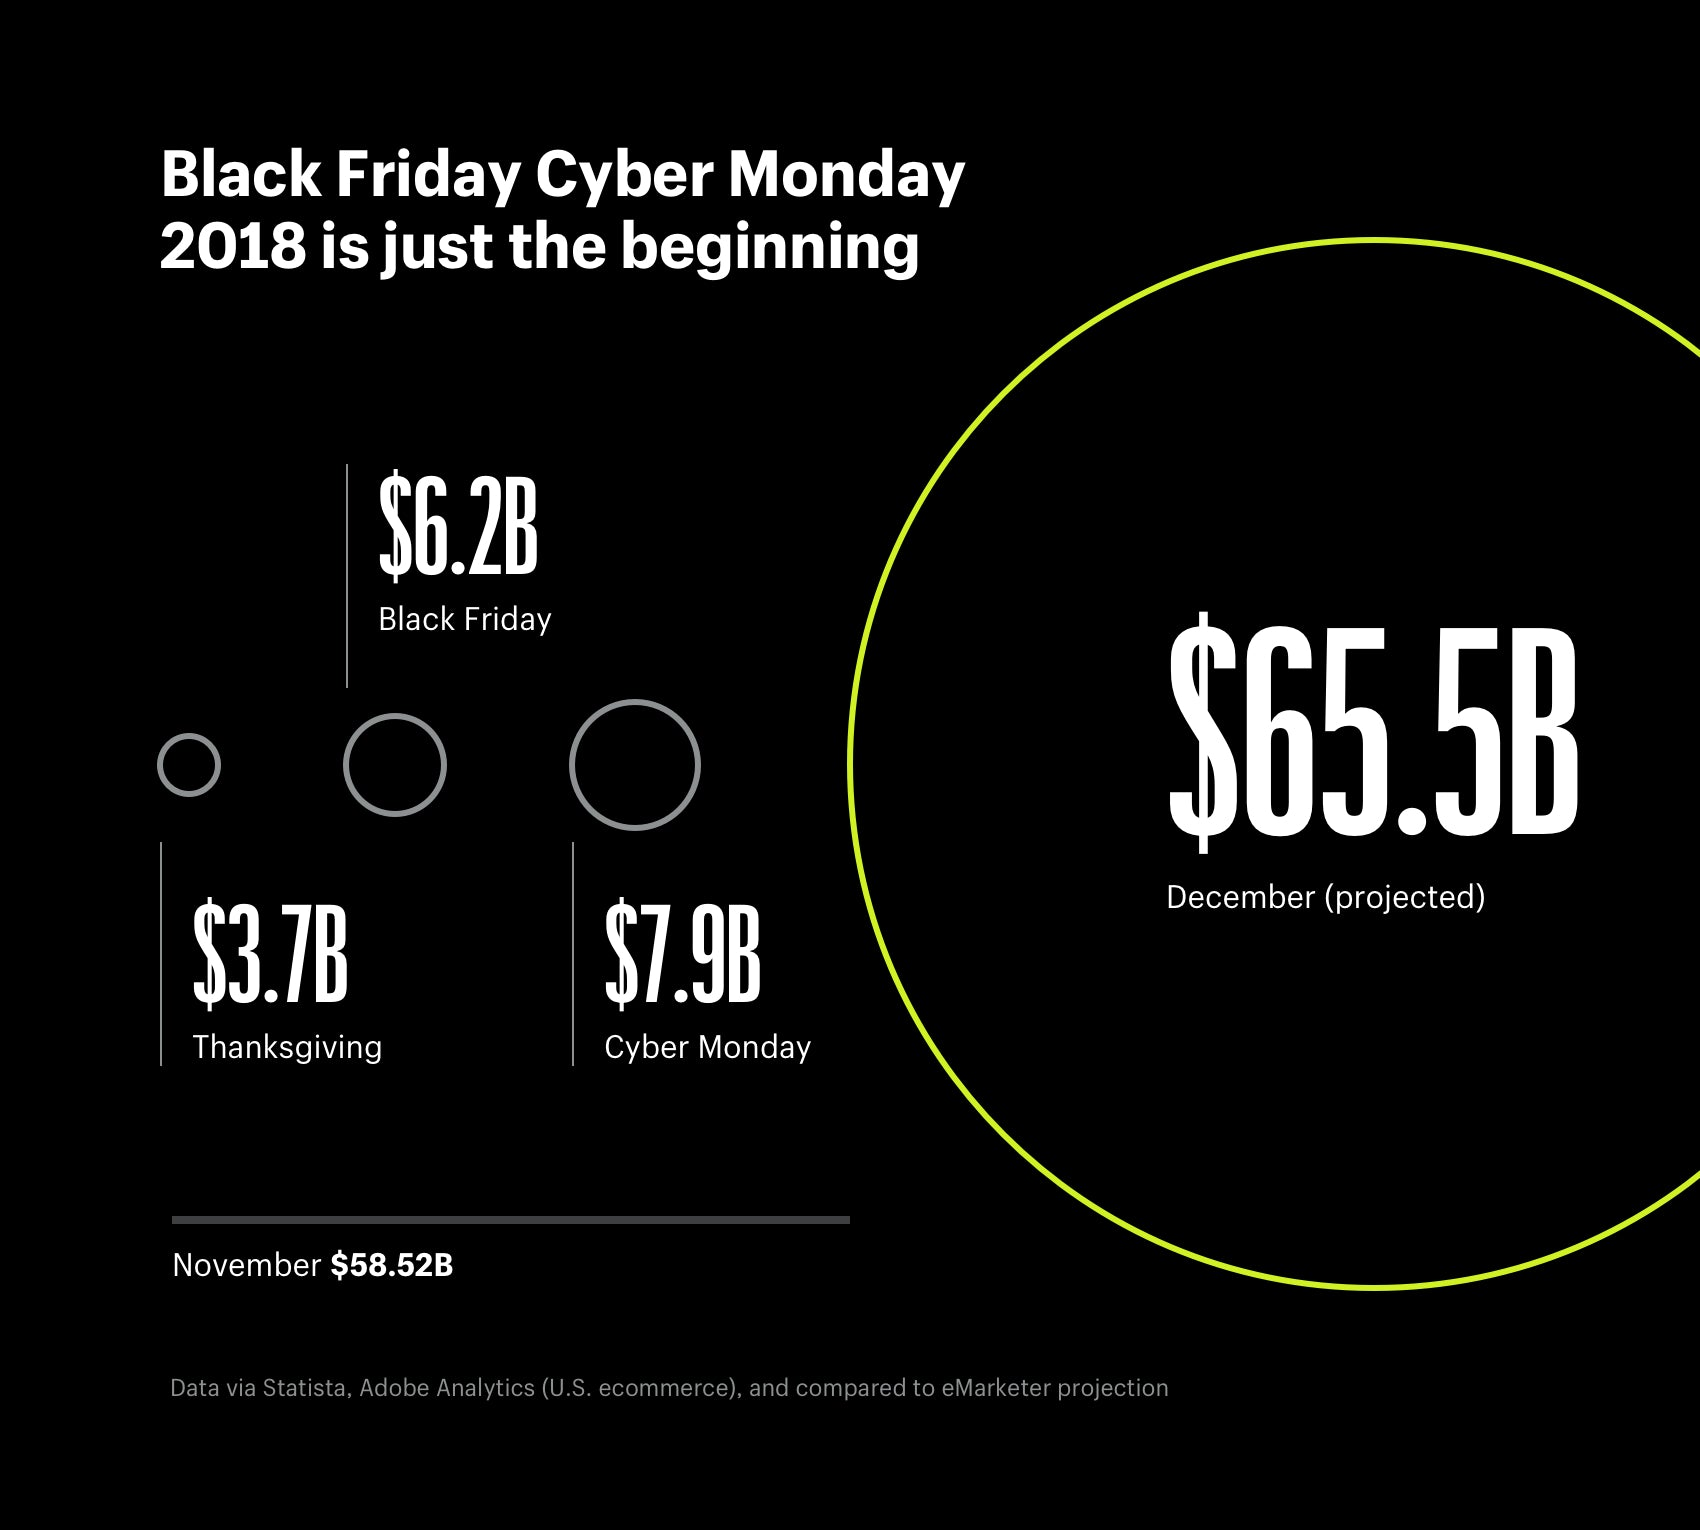 Black Friday Cyber Monday 2018 is just the beginning of holiday shopping online